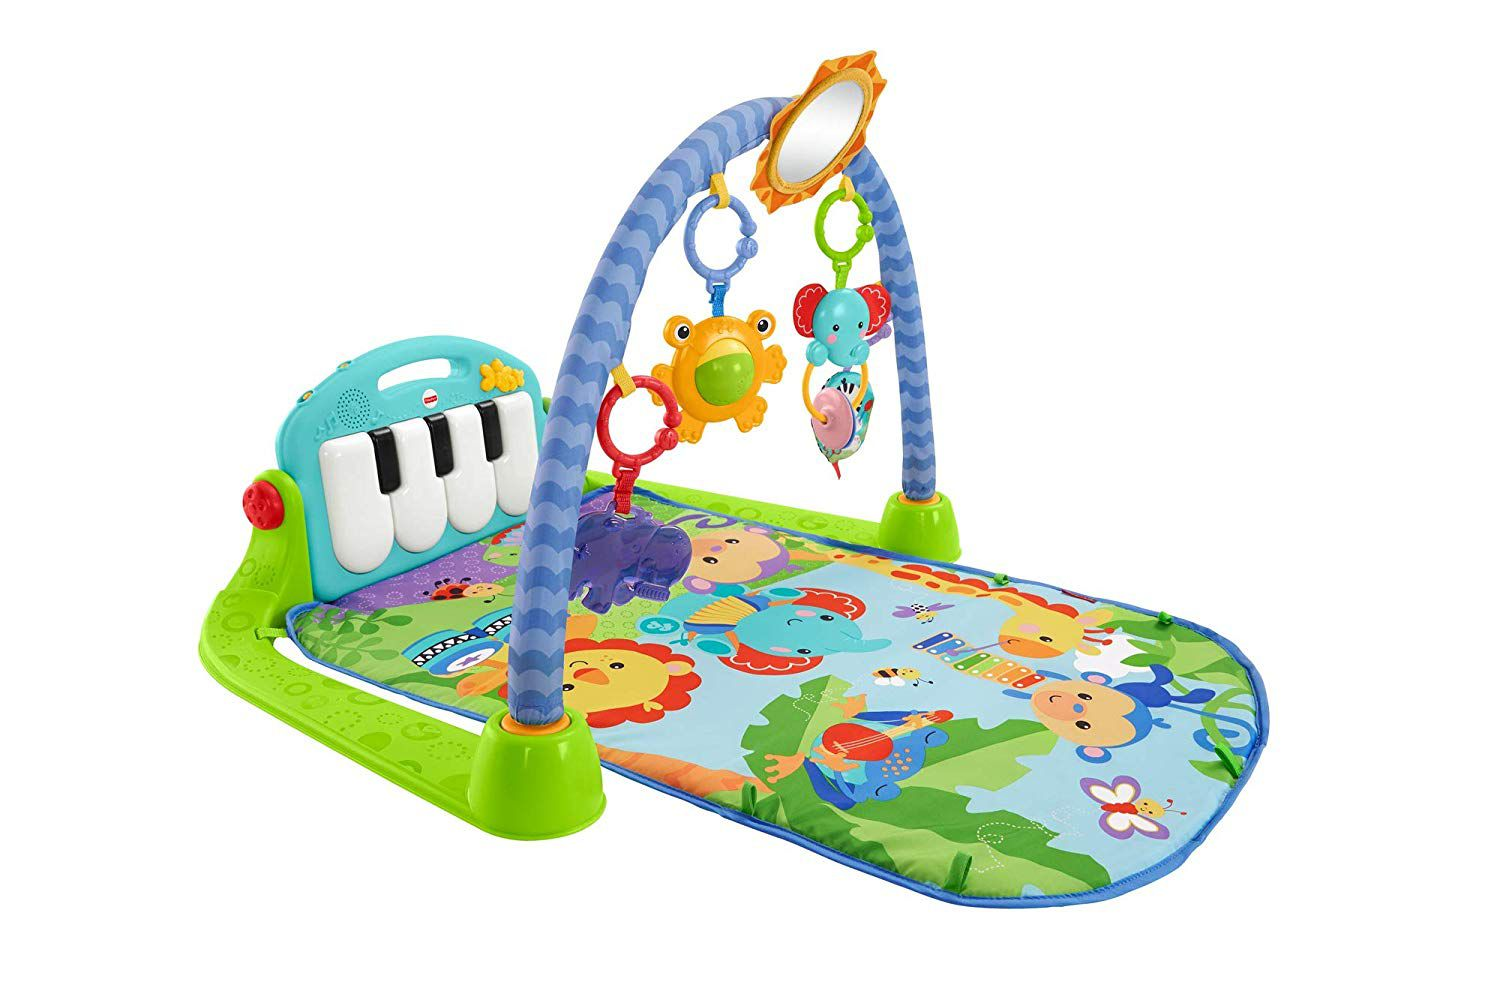 aeacc2b026675 The 9 Best Baby Gifts of 2019